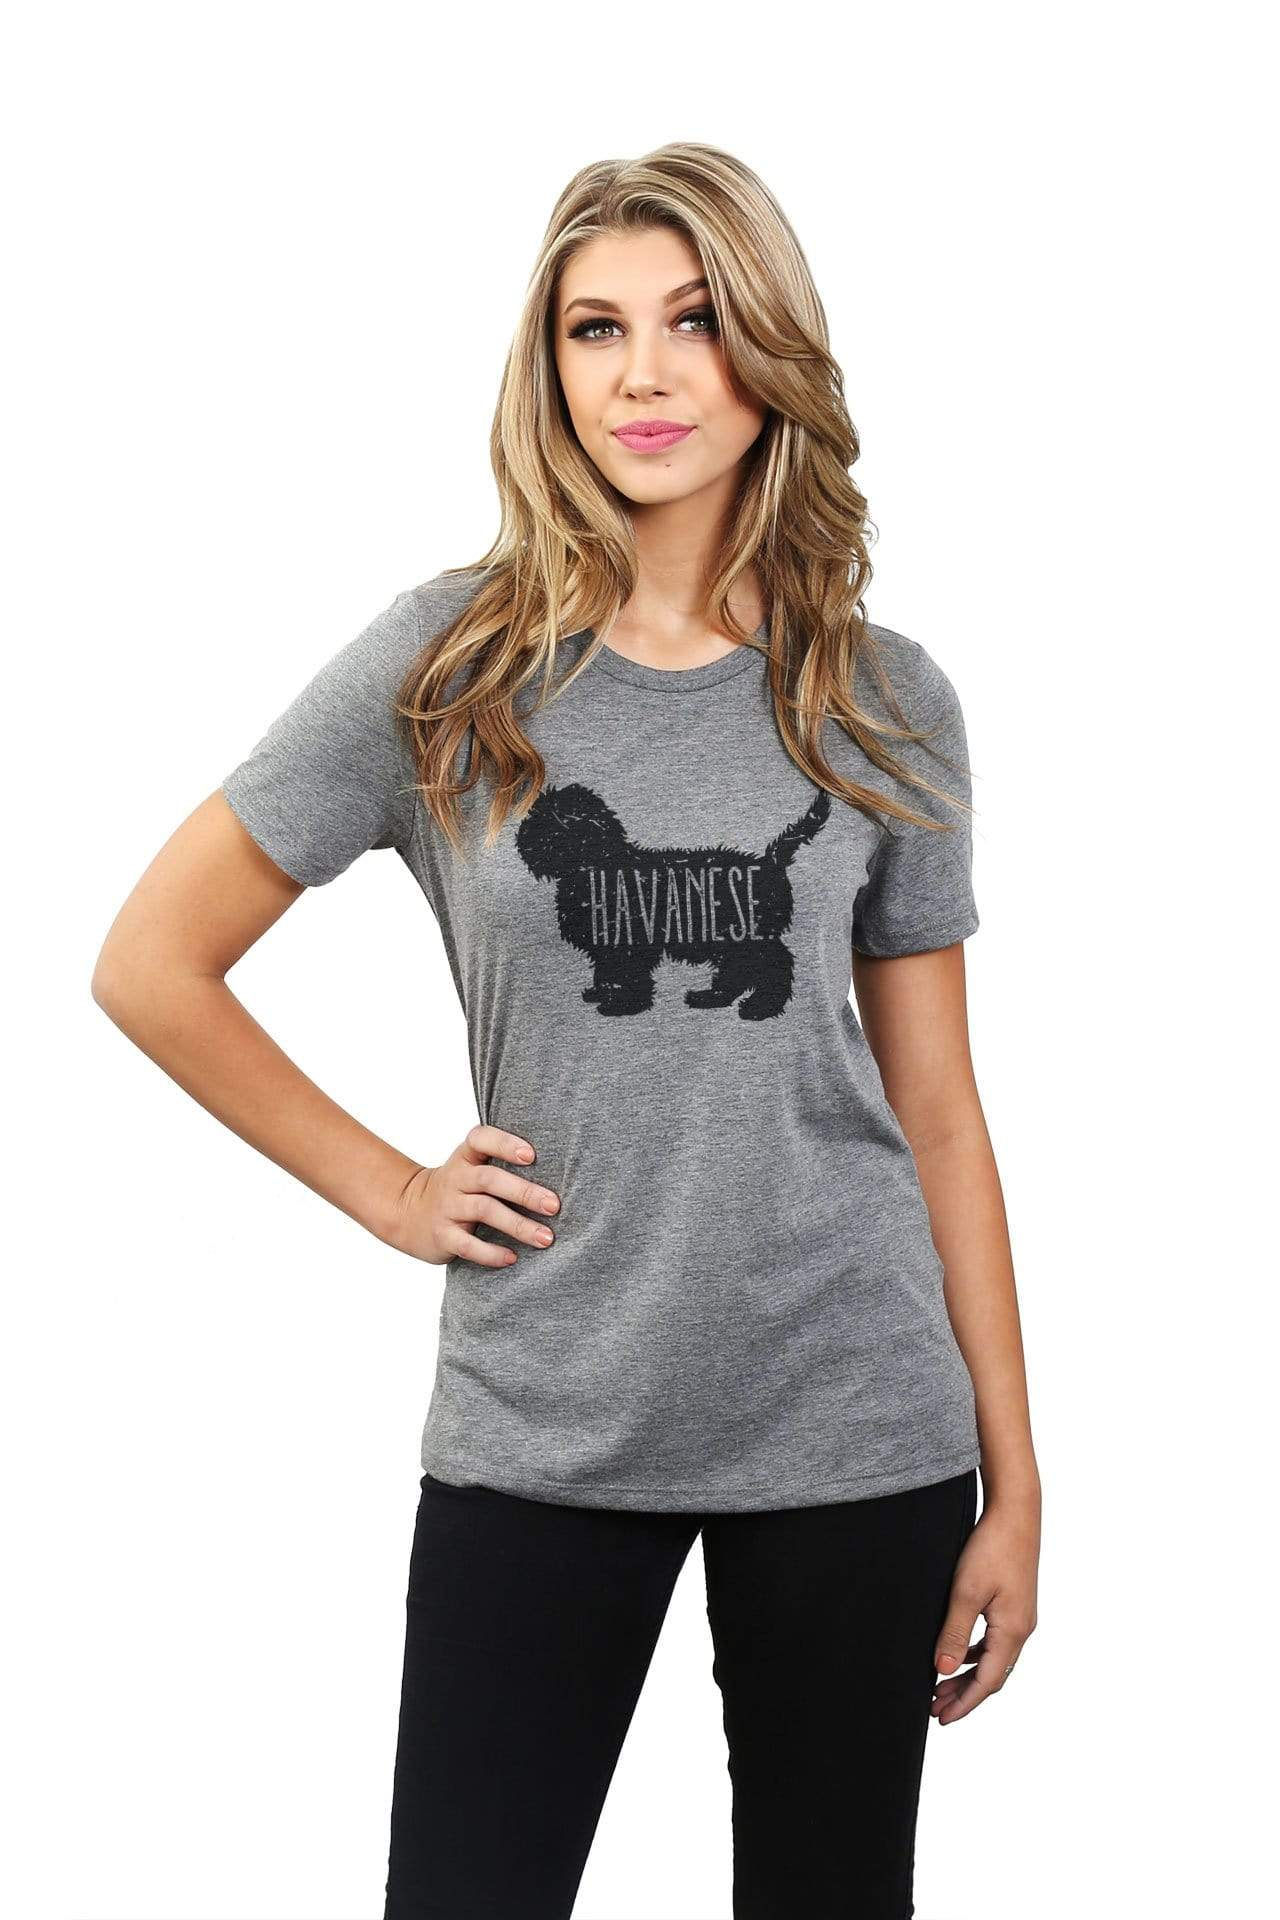 Havanese Dog Silhouette Women Heather Grey Relaxed Crew T-Shirt Tee Top